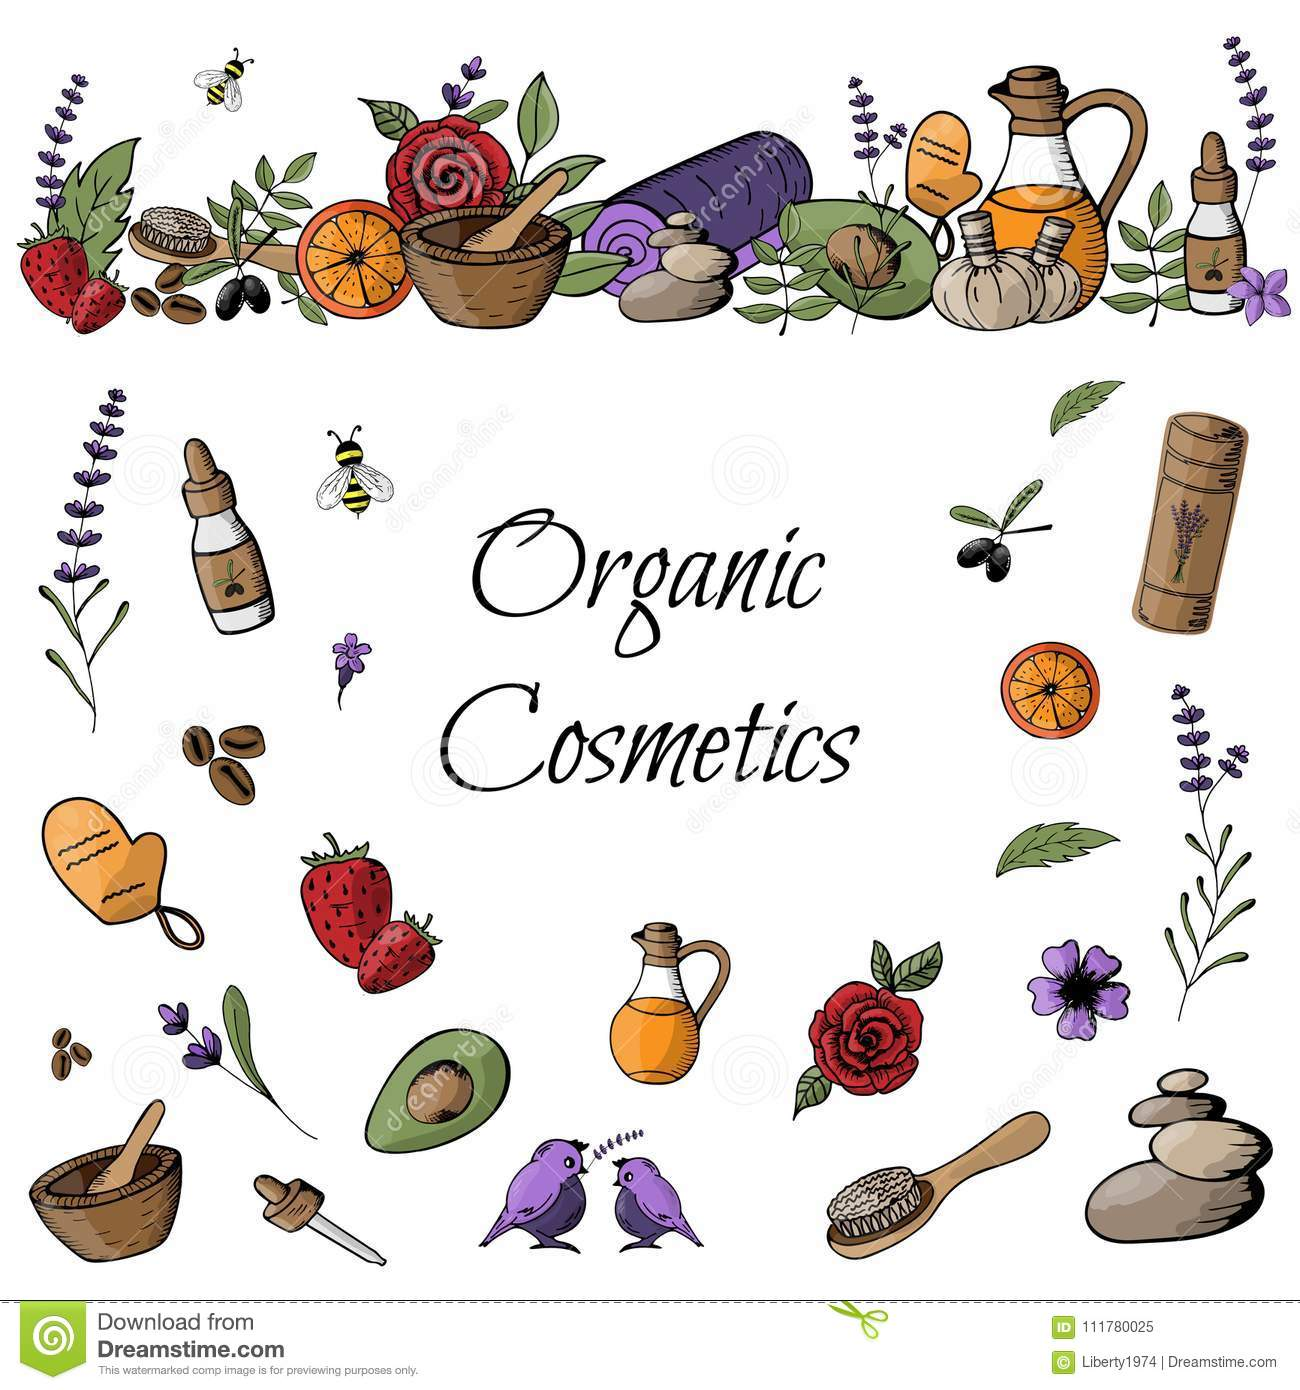 Doodle with colored organic products